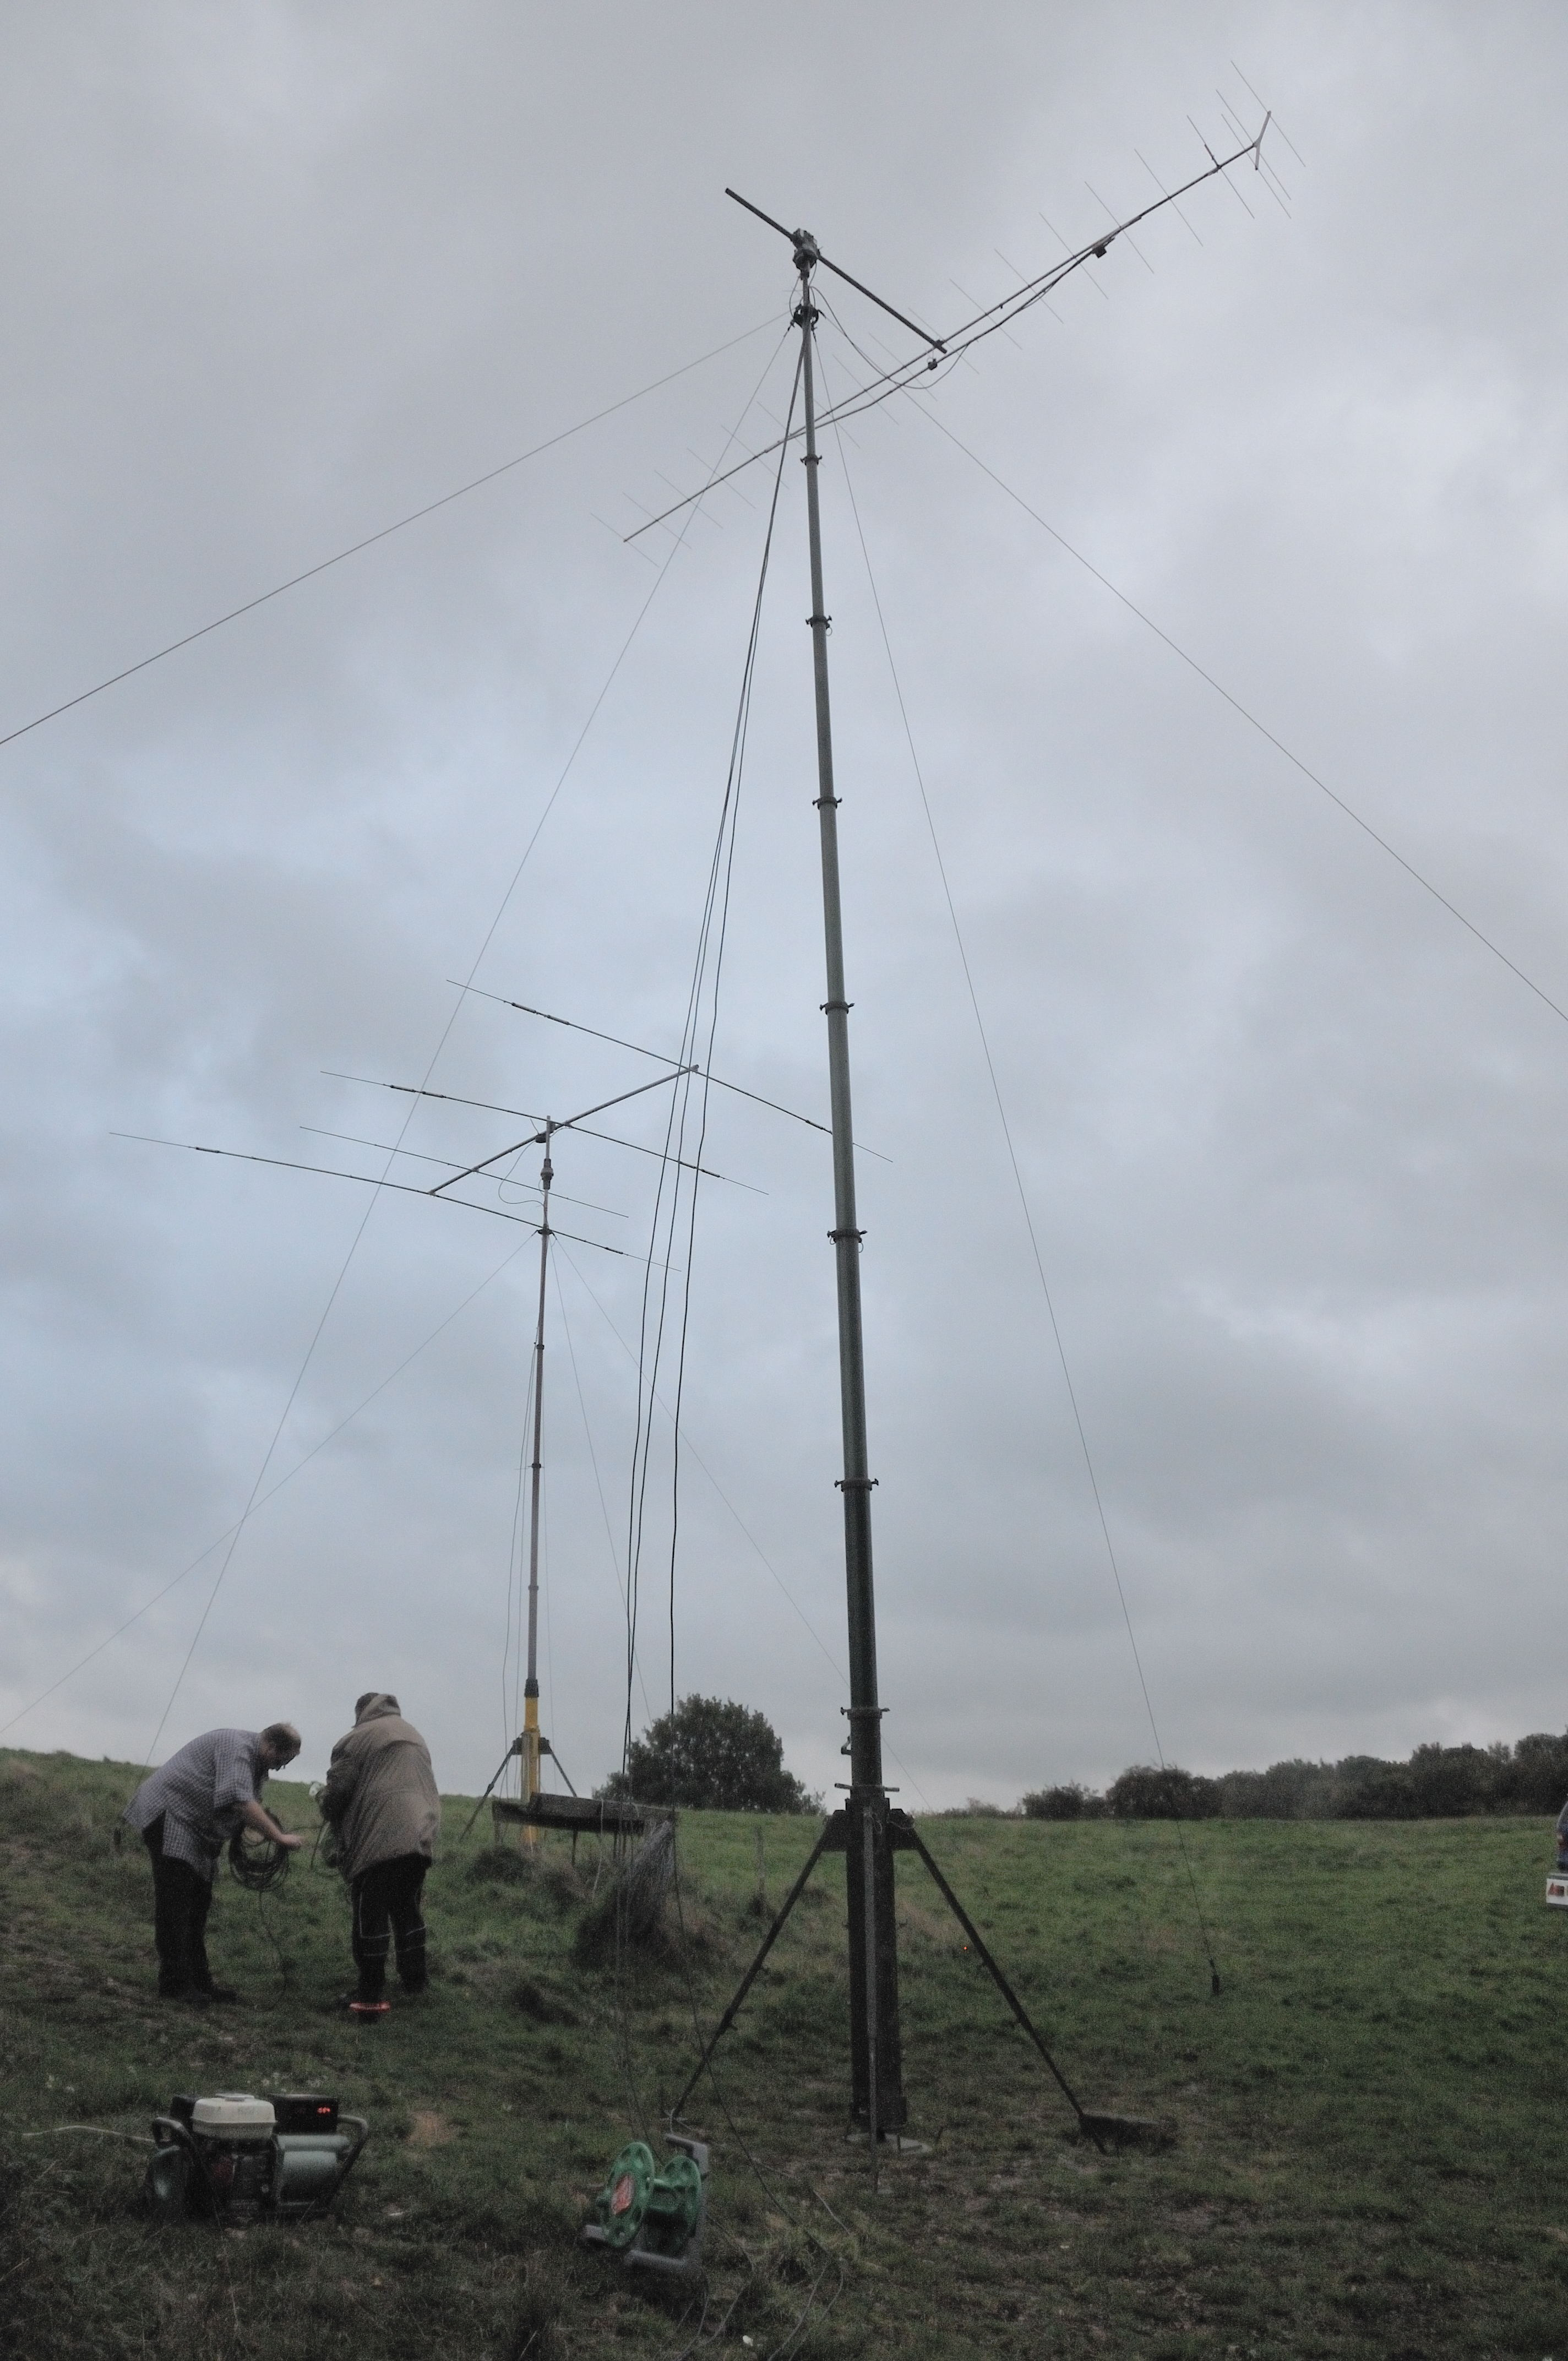 Pictures from CQWW 2013